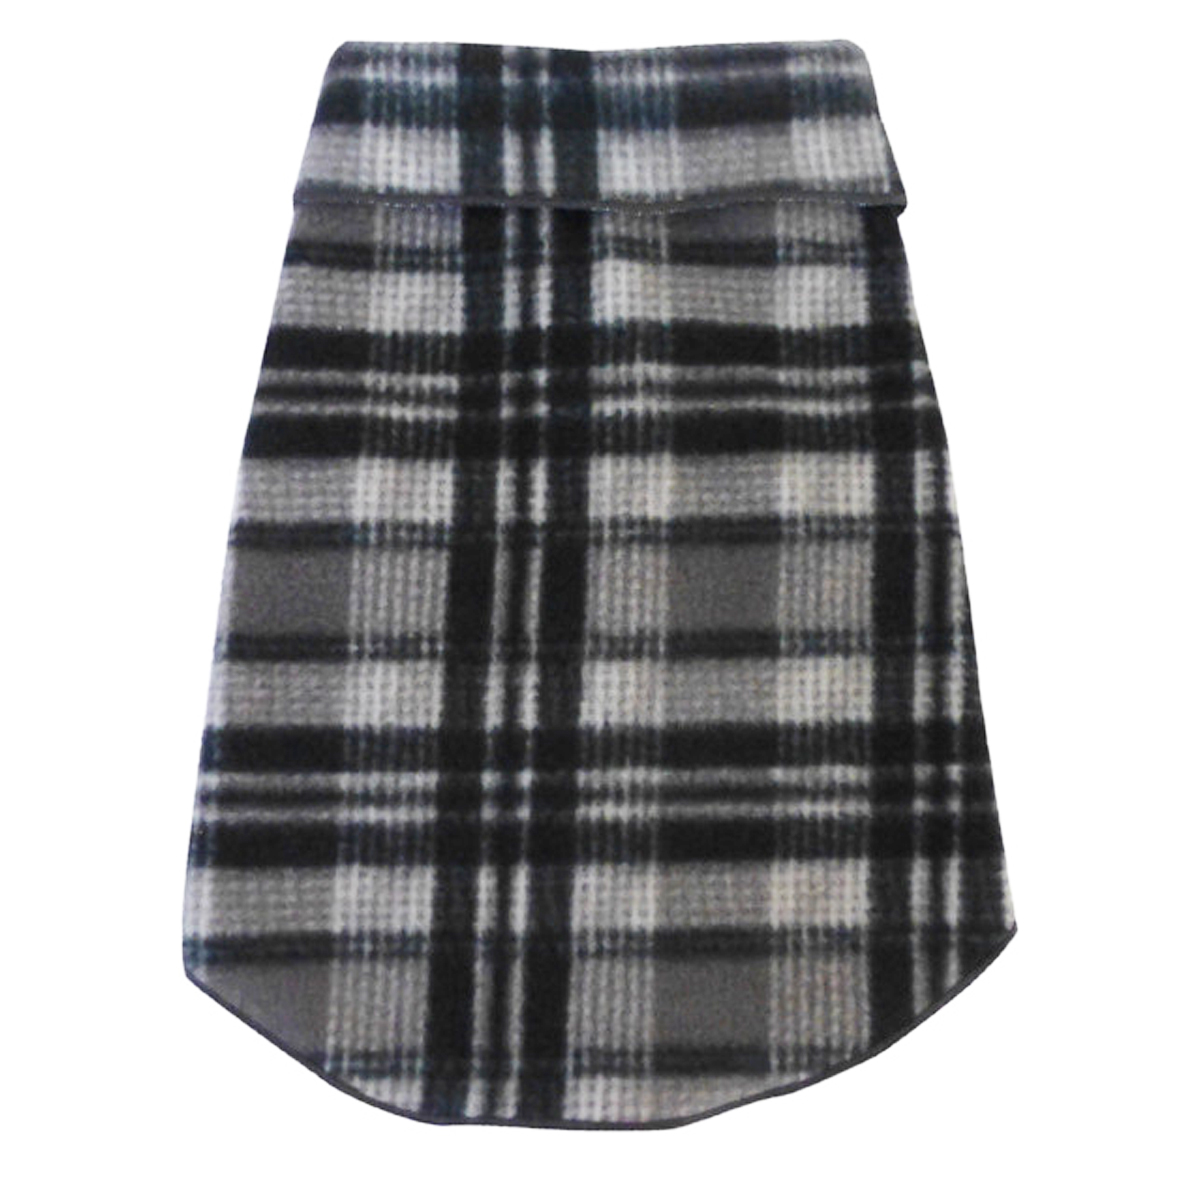 Plaid Dog Pullover - Gray and Black